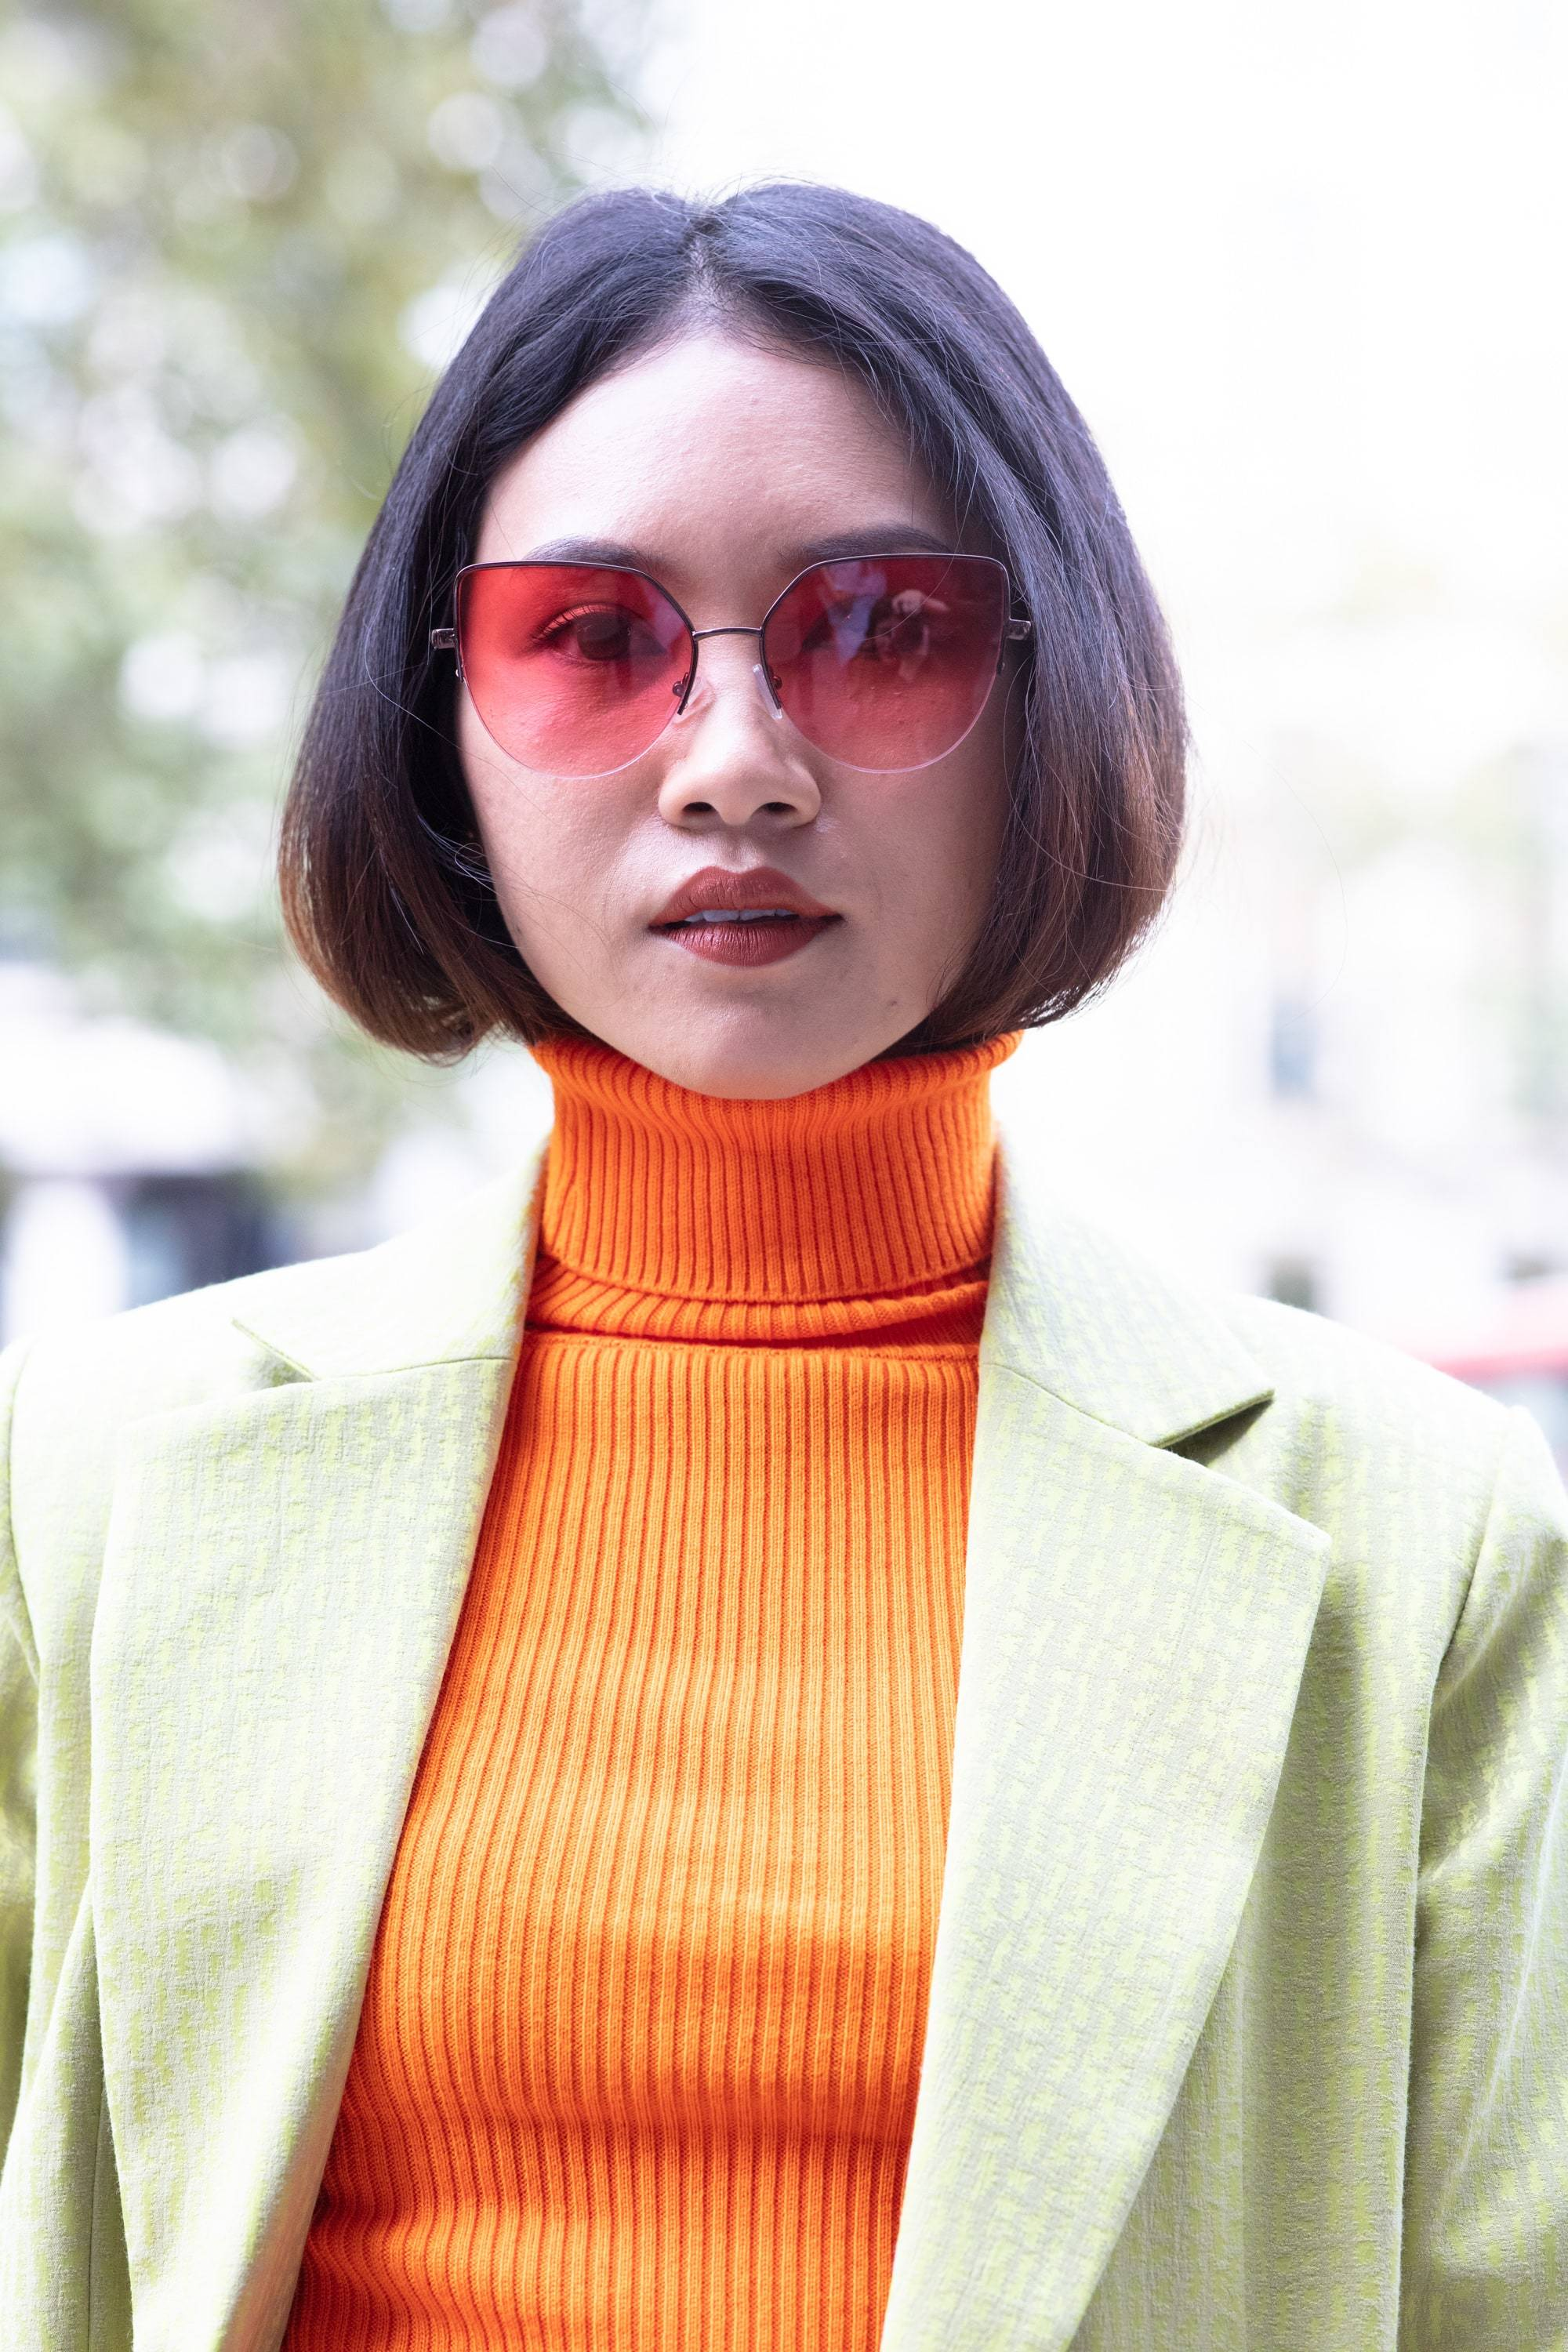 Bonfire hairstyles: Shot of a woman with straight hair tucked into her orange turtleneck, wearing lime green blazer and posing outside